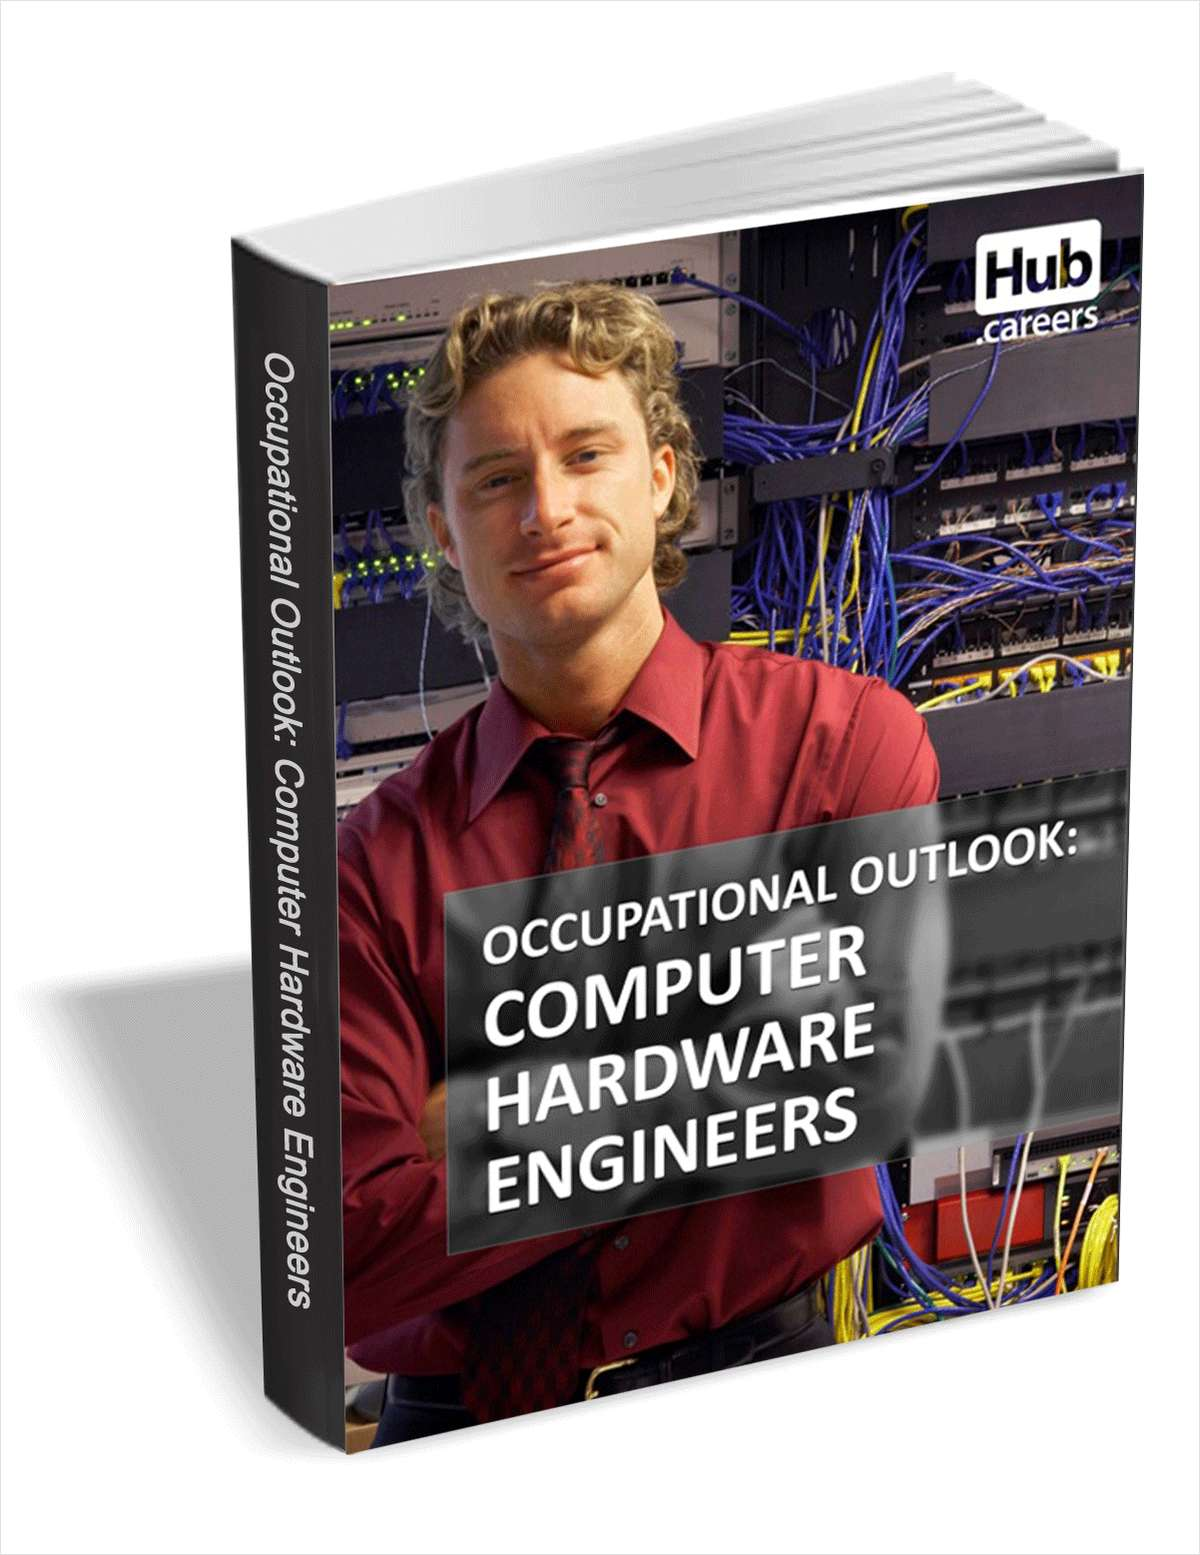 Computer Hardware Engineers - Occupational Outlook